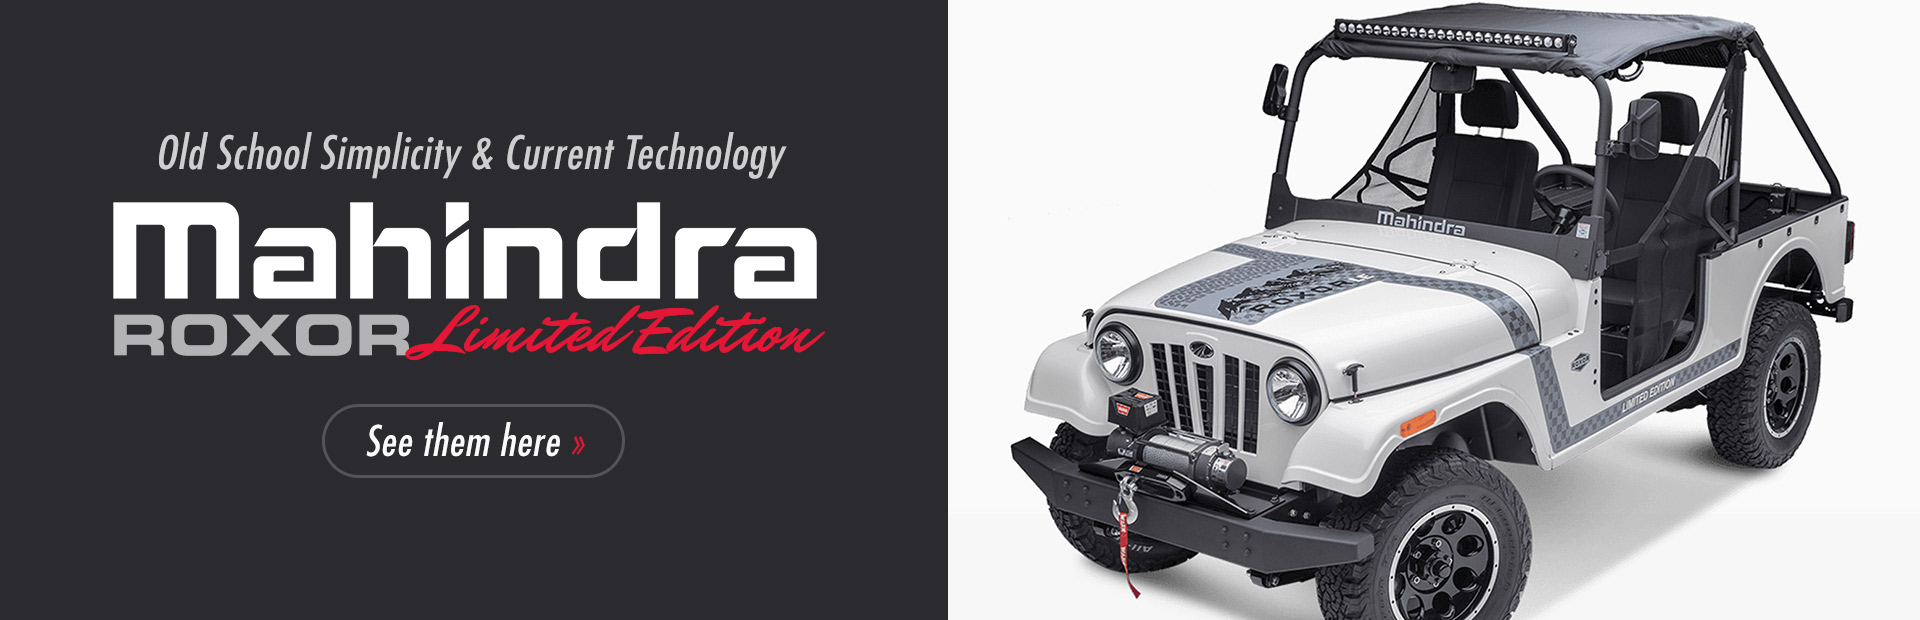 Mahindra ROXOR Limited Edition: Click here to view the models.